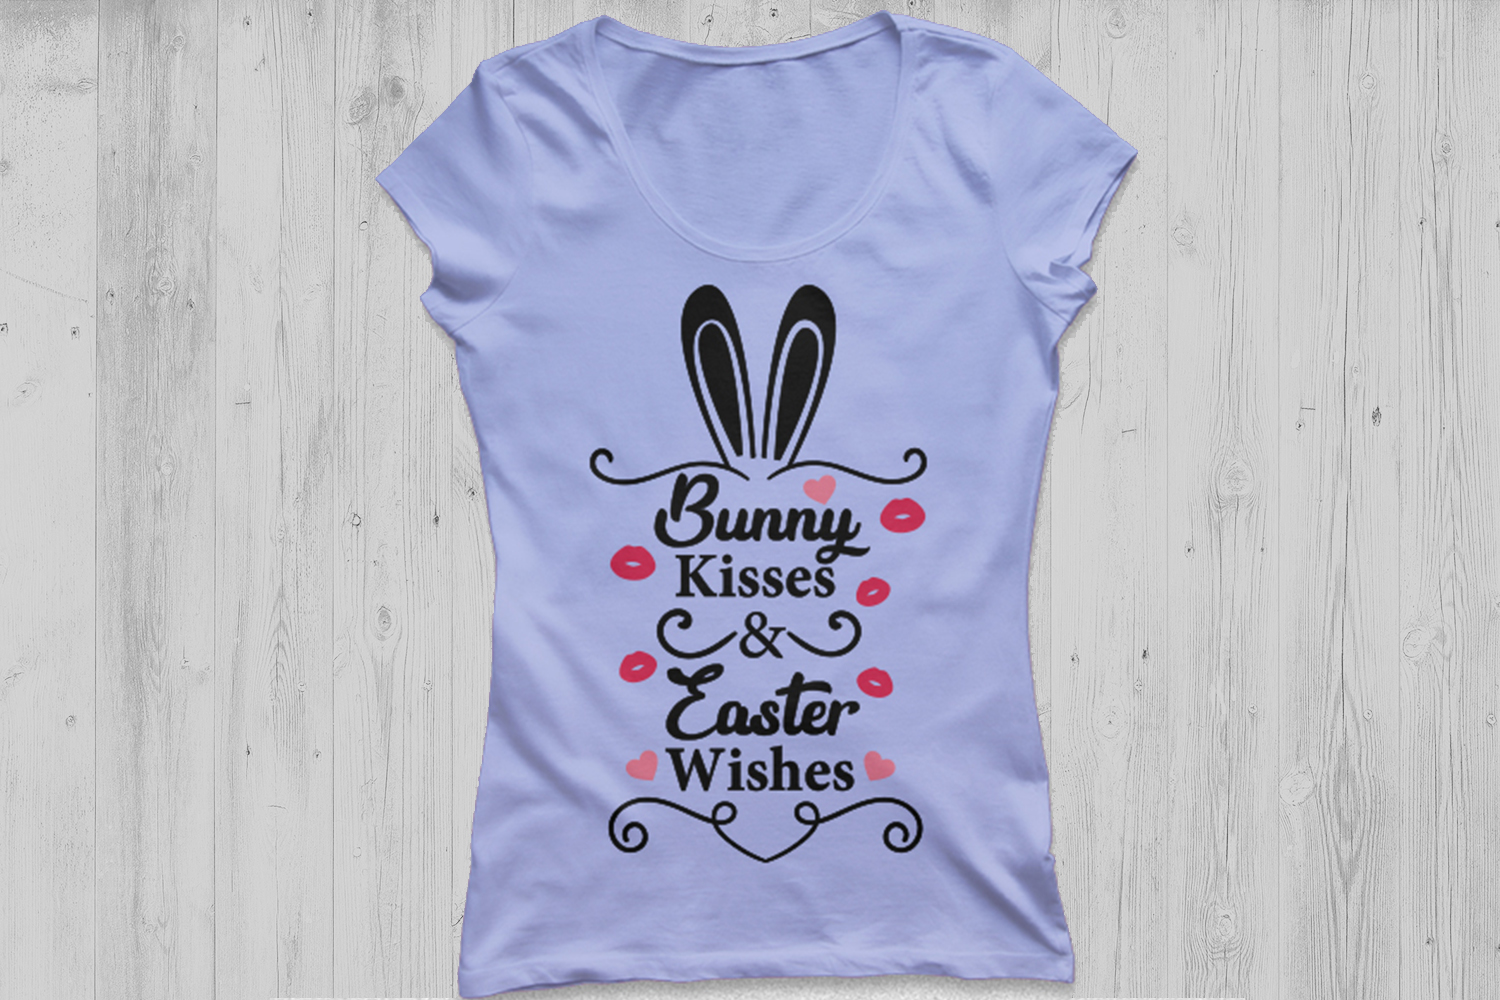 6a8a07465 Bunny Kisses and Easter Wishes Svg, Easter SVG, Easter Bunny Svg, Peeps Svg